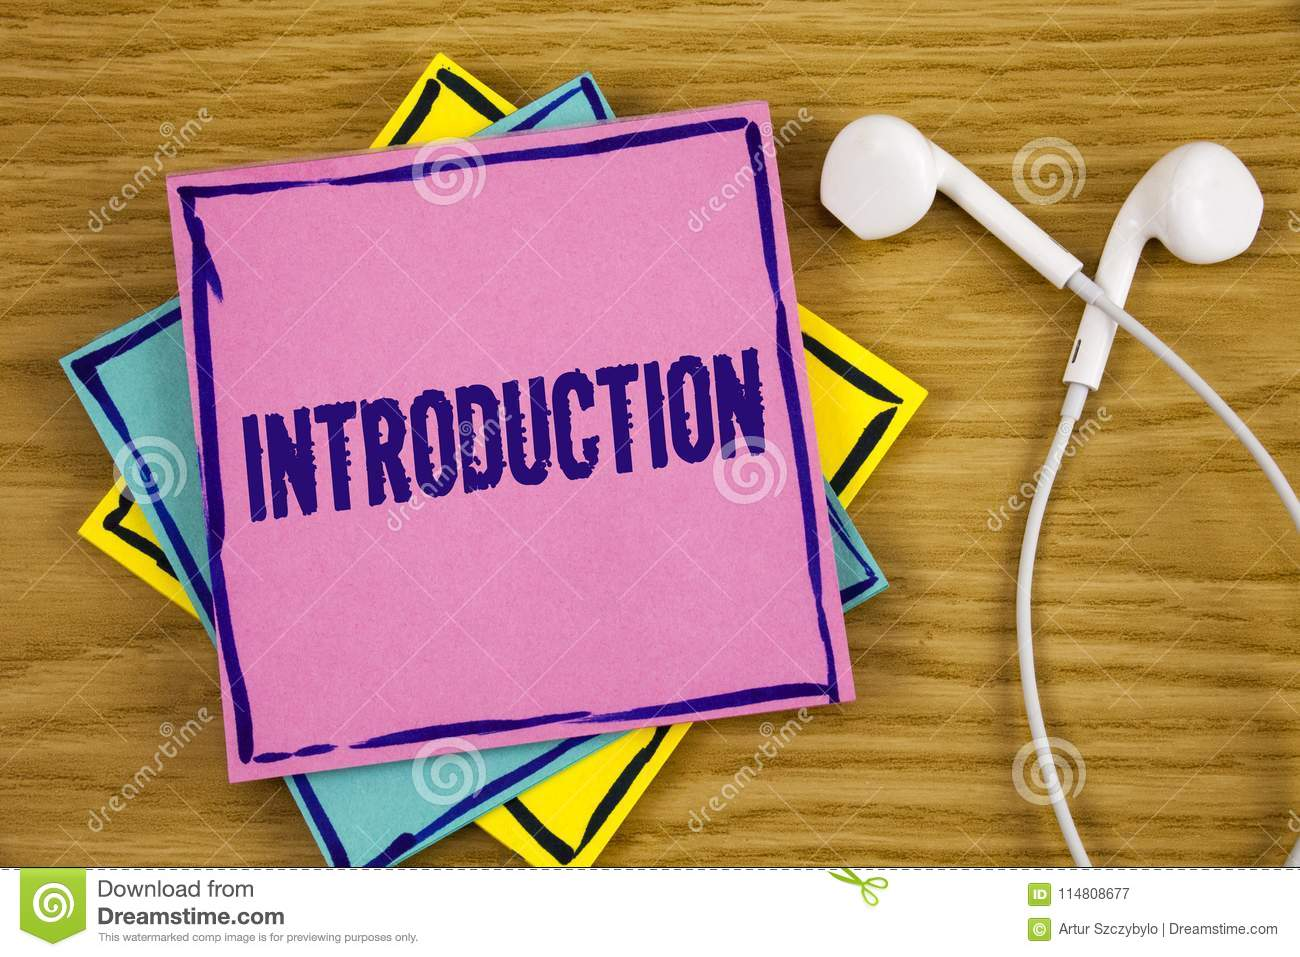 induction in writing